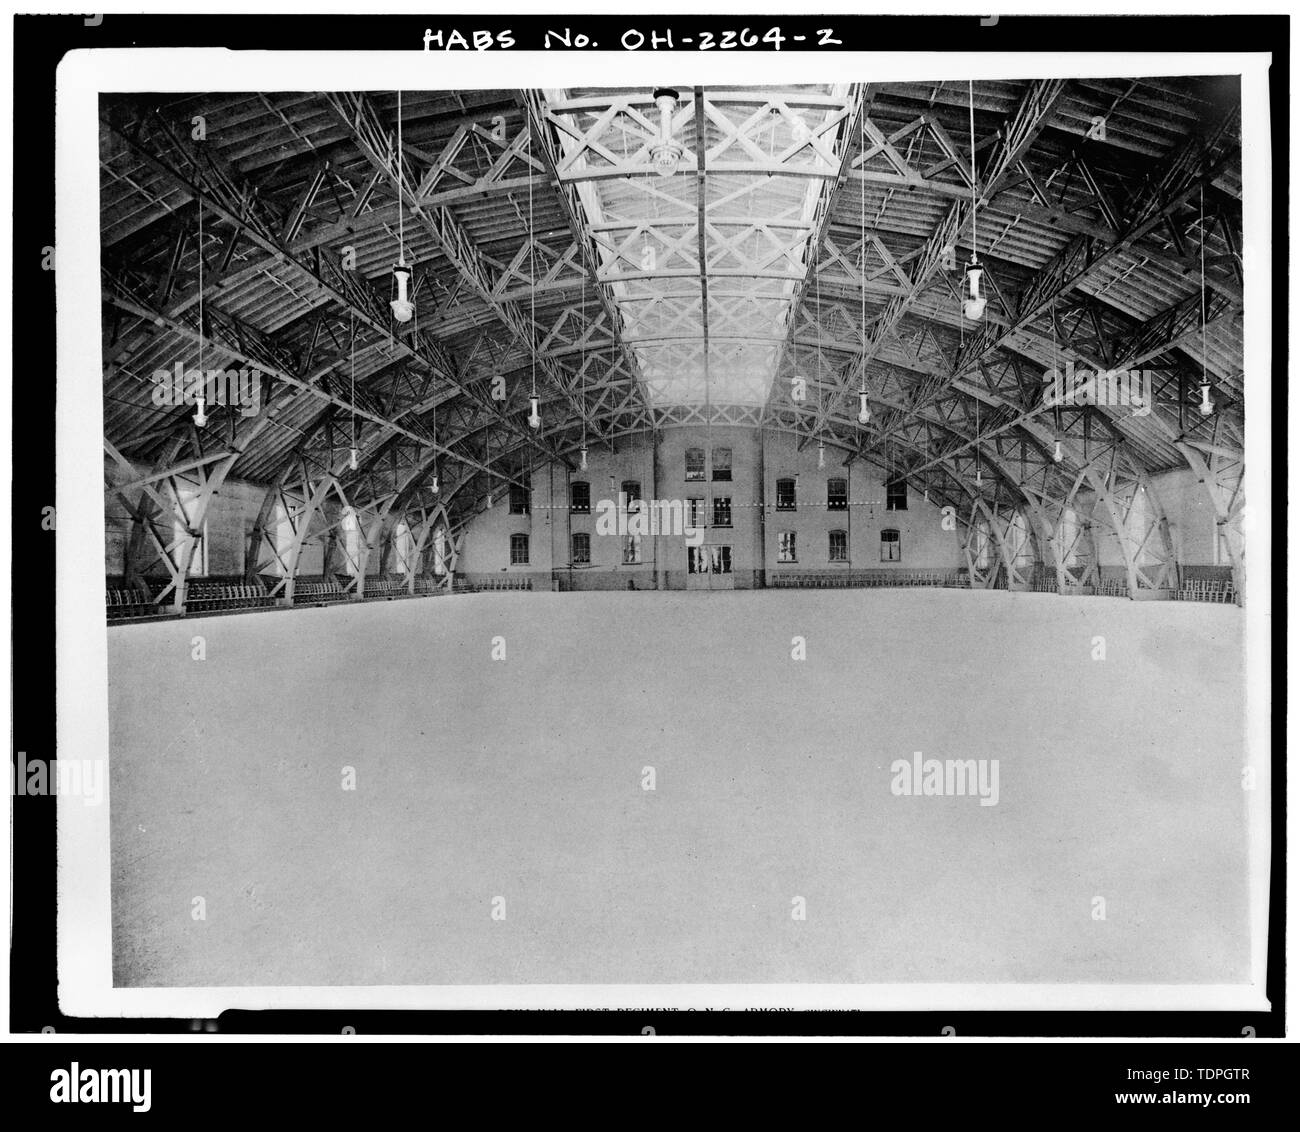 from 'Selections from Executed Work and Sketches,' Hannaford and Sons, Architects, circa 1893 INTERIOR OF DRILL HALL - Ohio National Guard Armory, 1417-1437 Western Avenue, Cincinnati, Hamilton County, OH - Stock Image